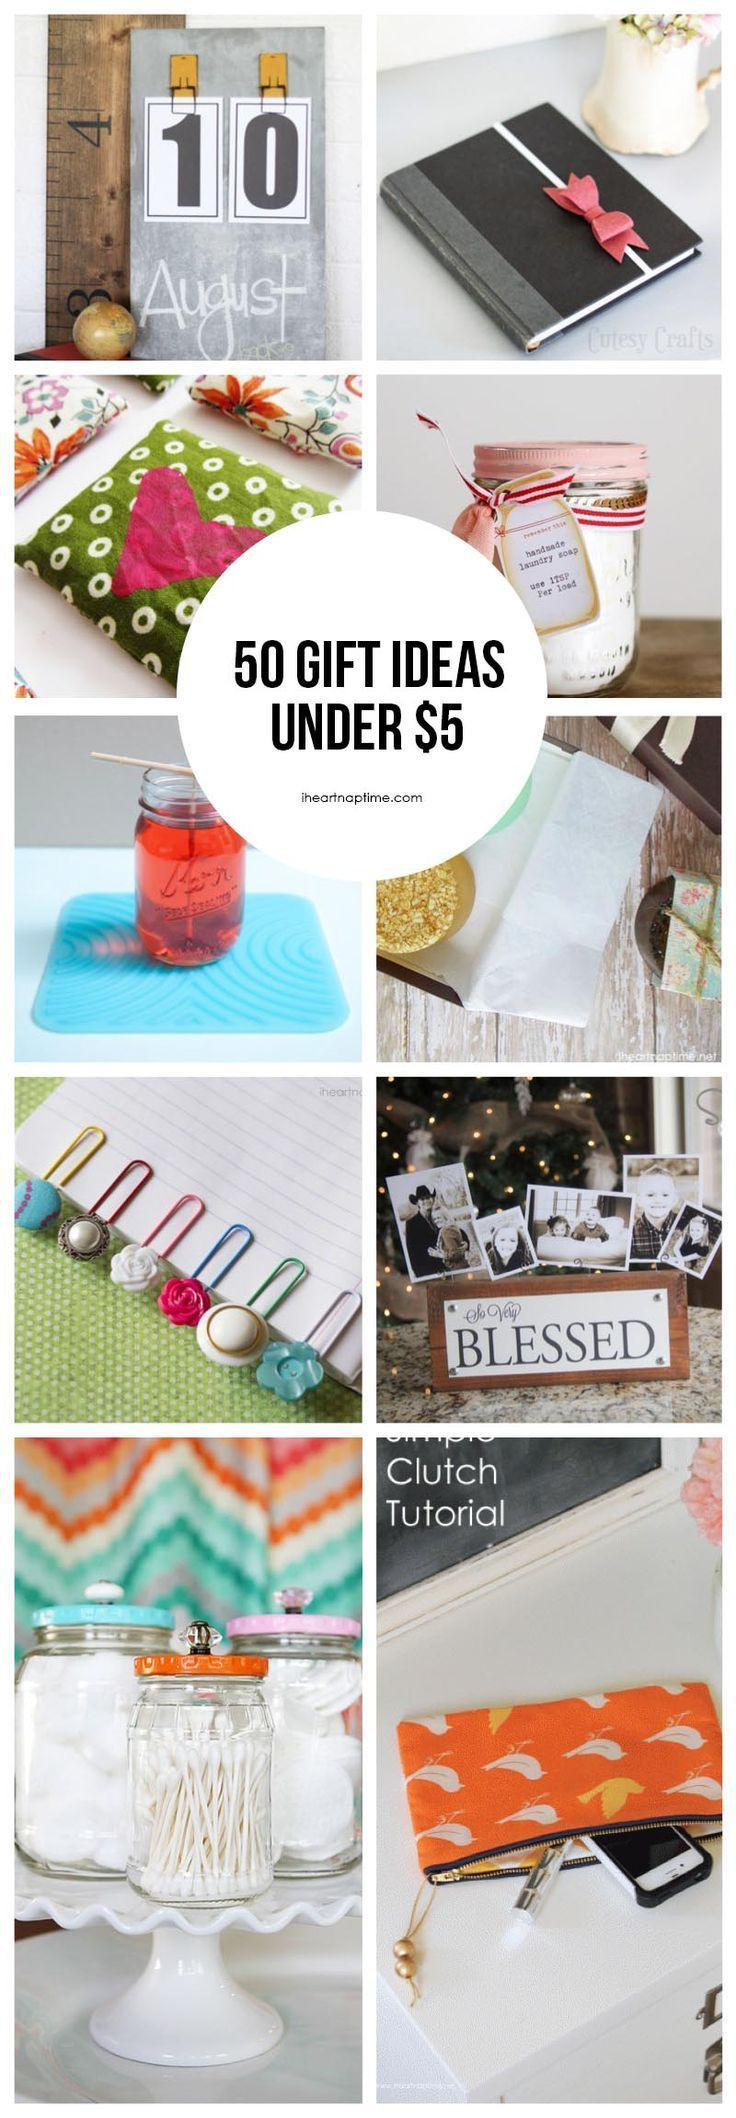 Best ideas about Gift Ideas For Older Women . Save or Pin Best 25 Gifts for older women ideas on Pinterest Now.